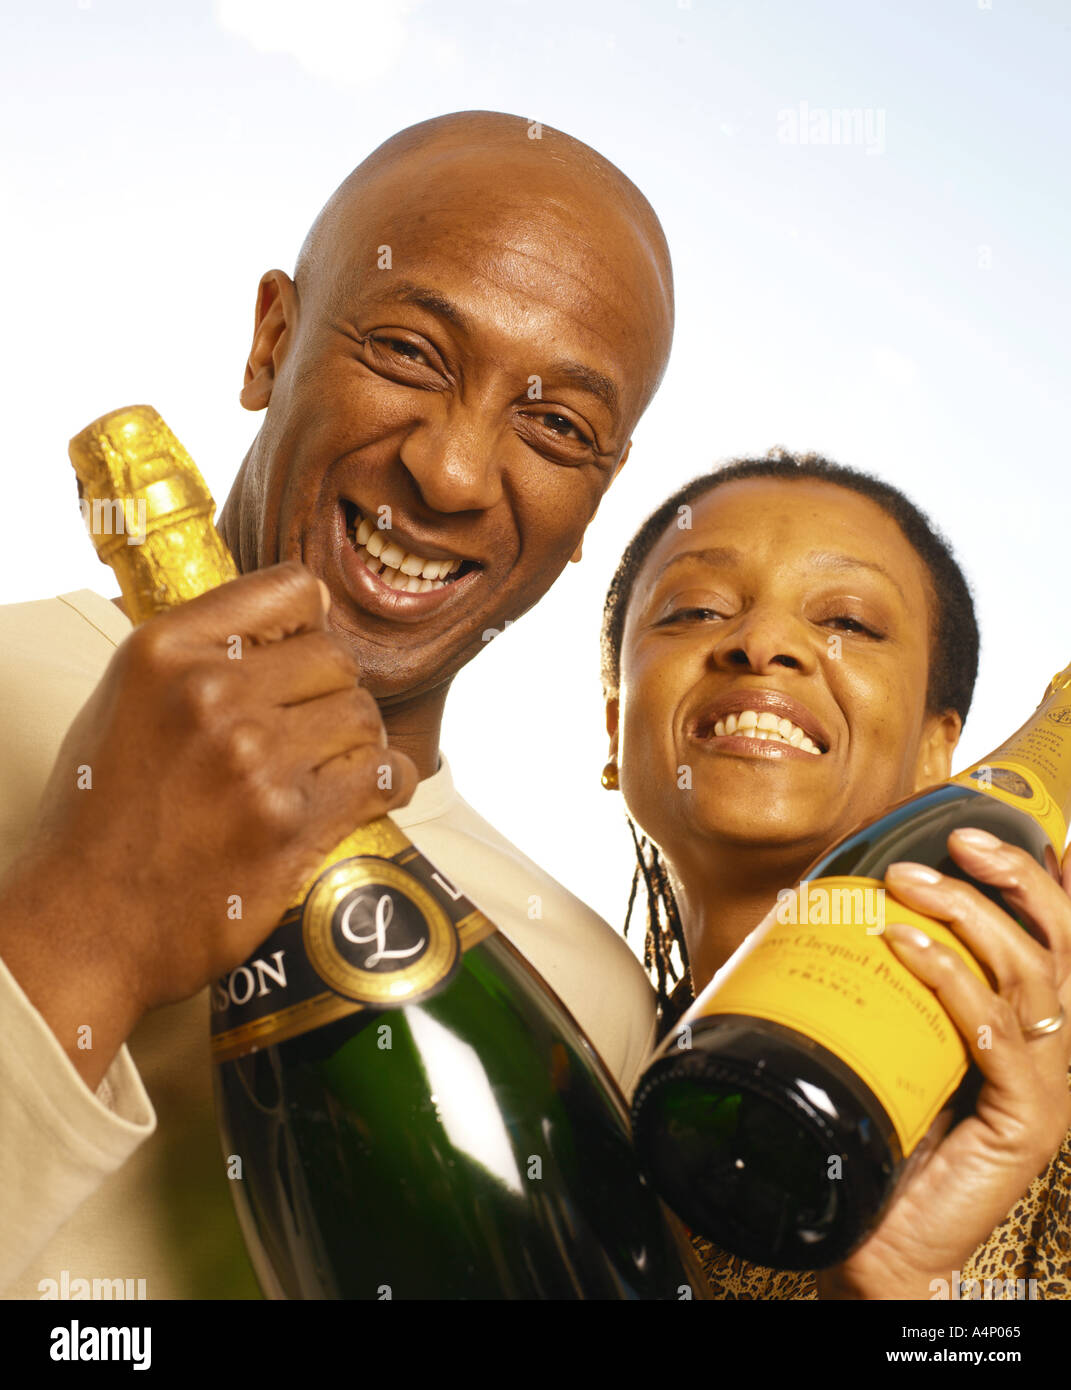 Couple celebrating with champagne Photo Stock